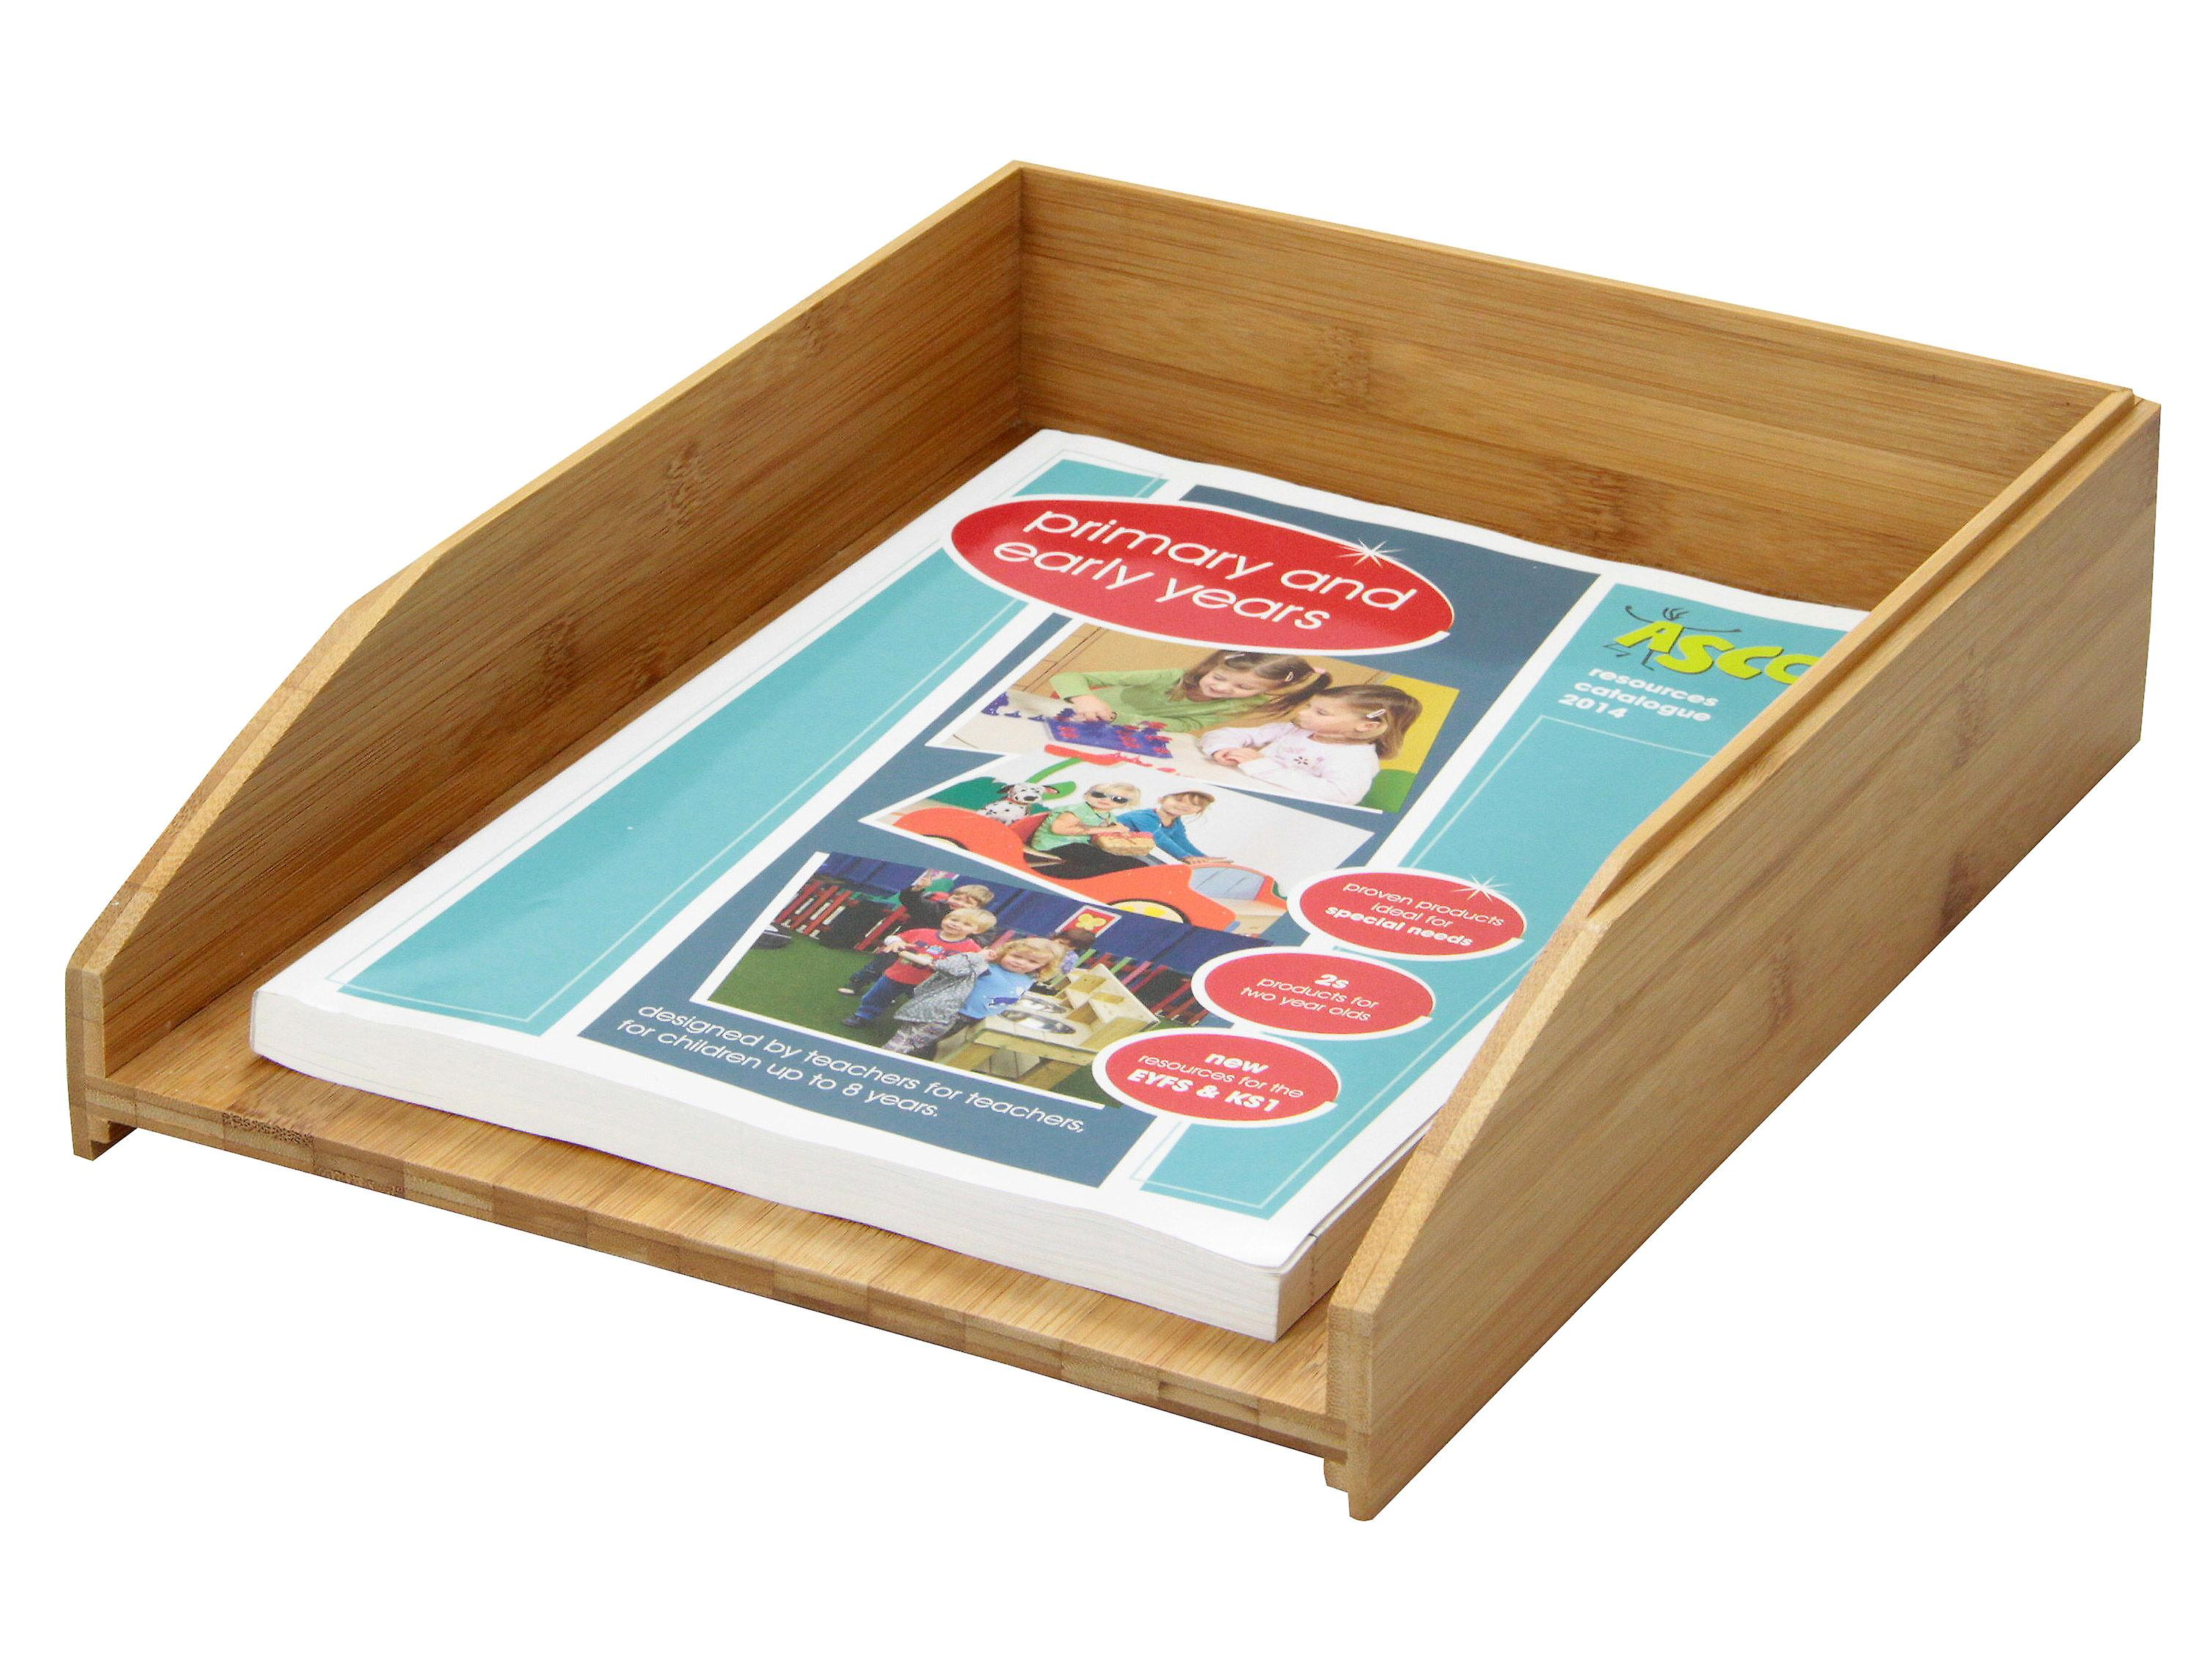 Woodquail Bamboo Stackable Letter Rack A4 Paper Tray Magazines Holder Sorter